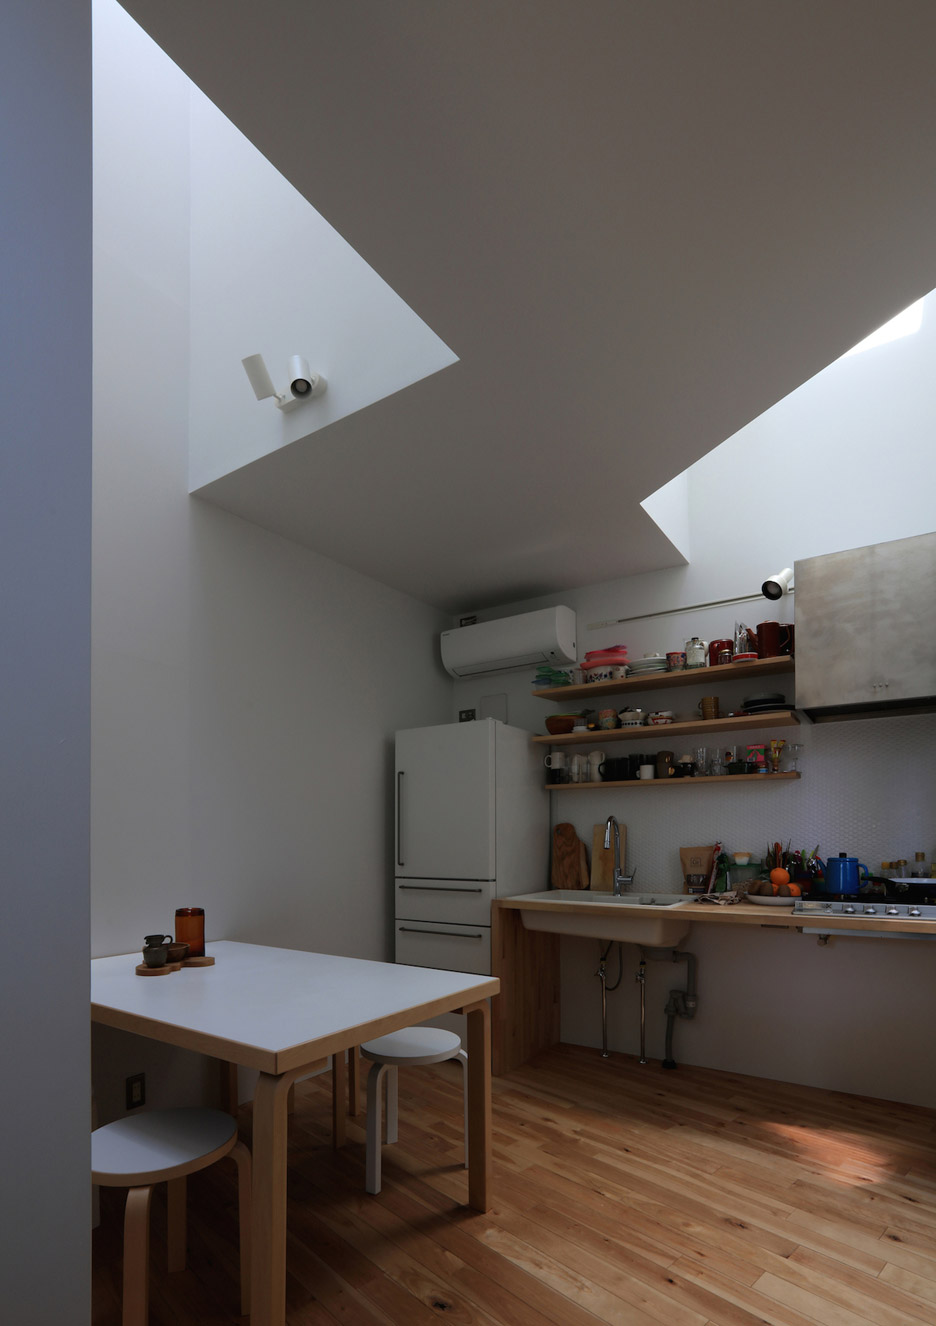 Four-metre-wide House in Hommachi built in Tokyo by Atelier HAKO Architects